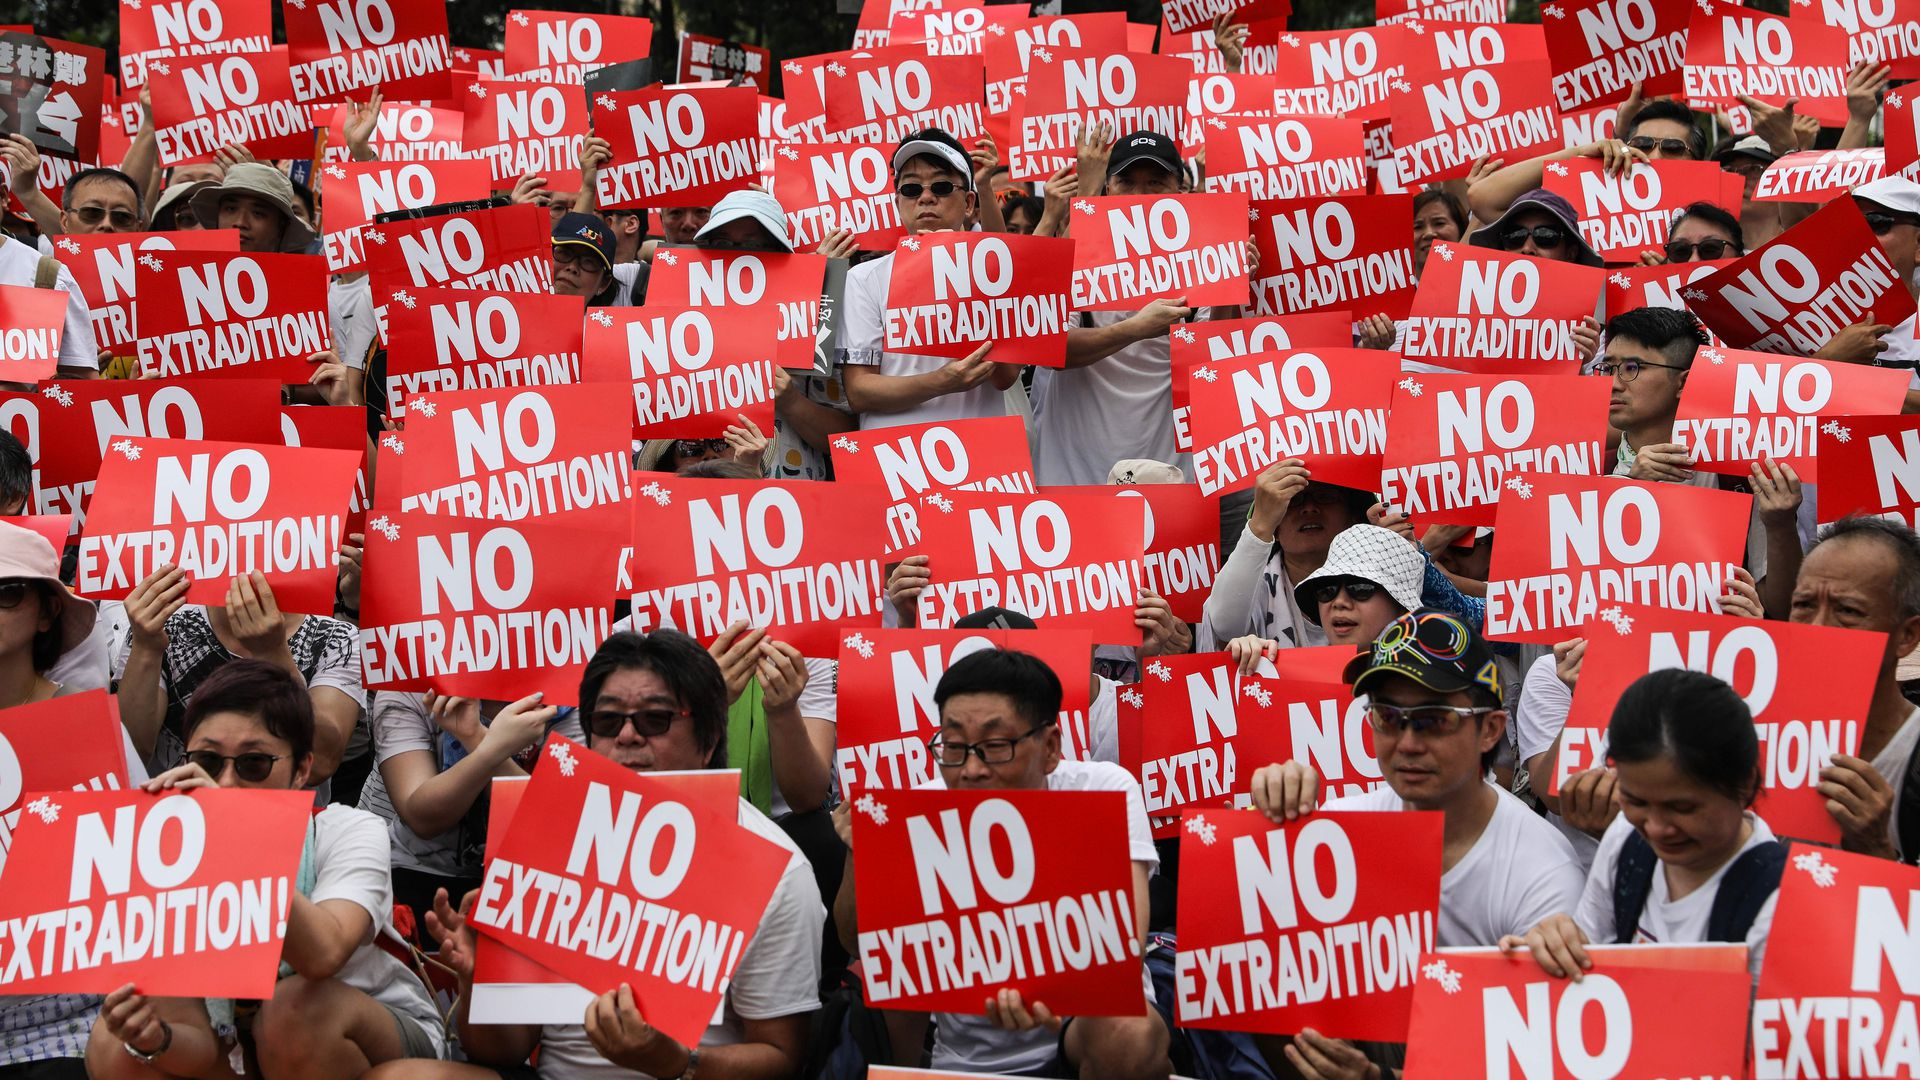 Protesters attend a rally against a controversial extradition law proposal in Hong Kong on June 9, 2019.